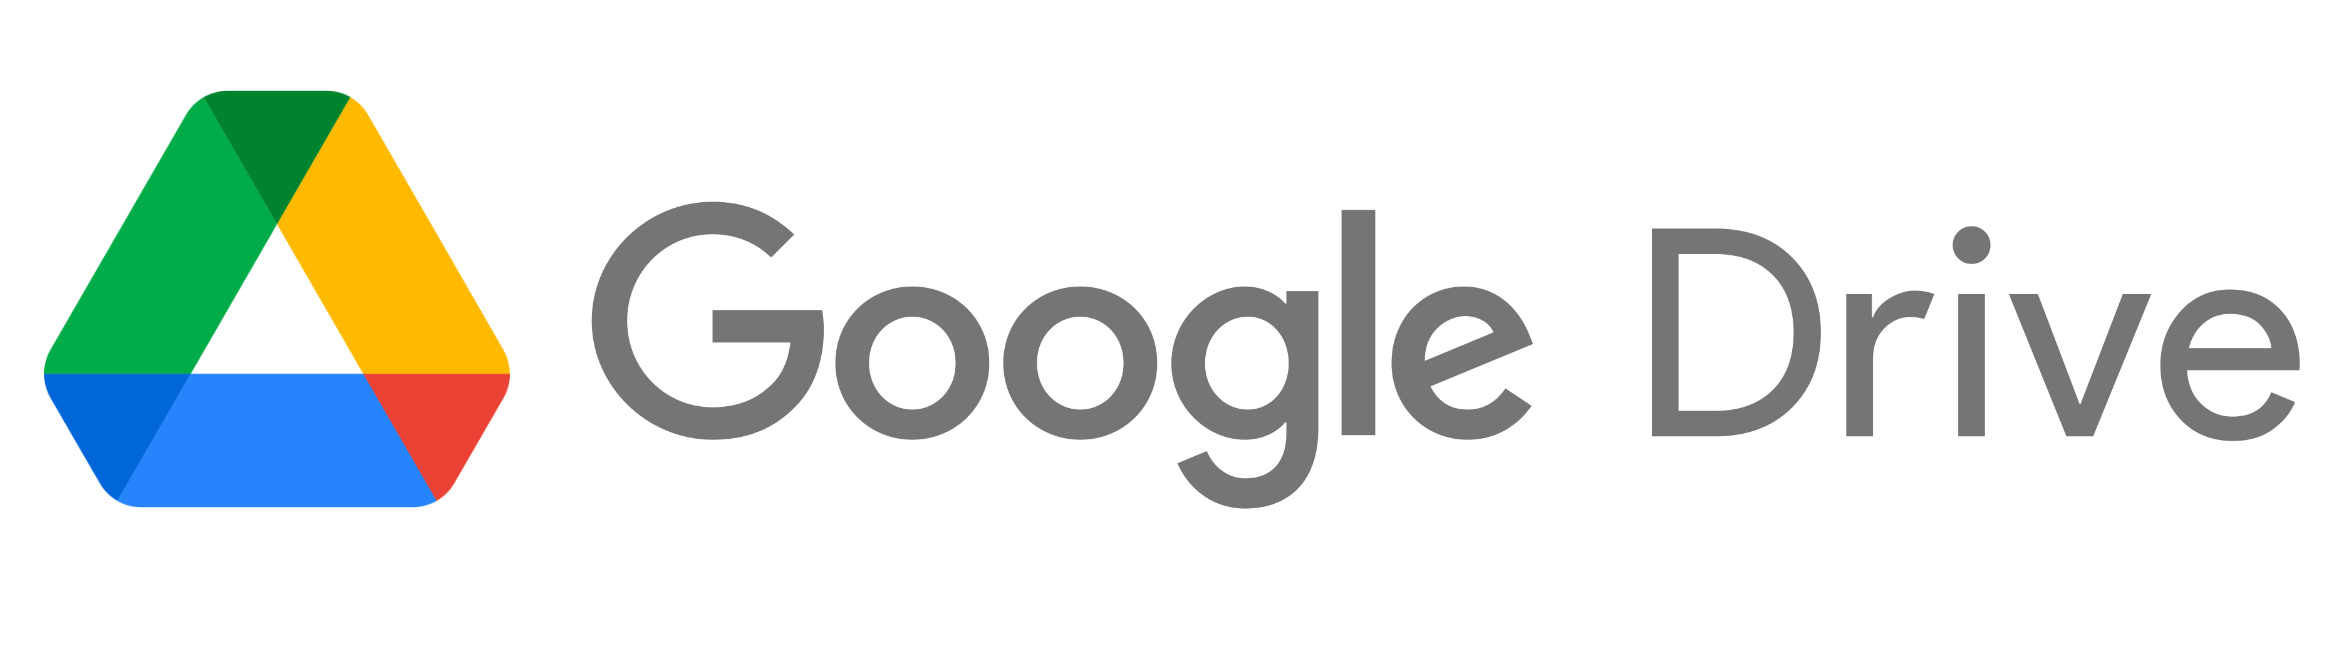 File:Google Drive text logo grey.png - Wikimedia Commons